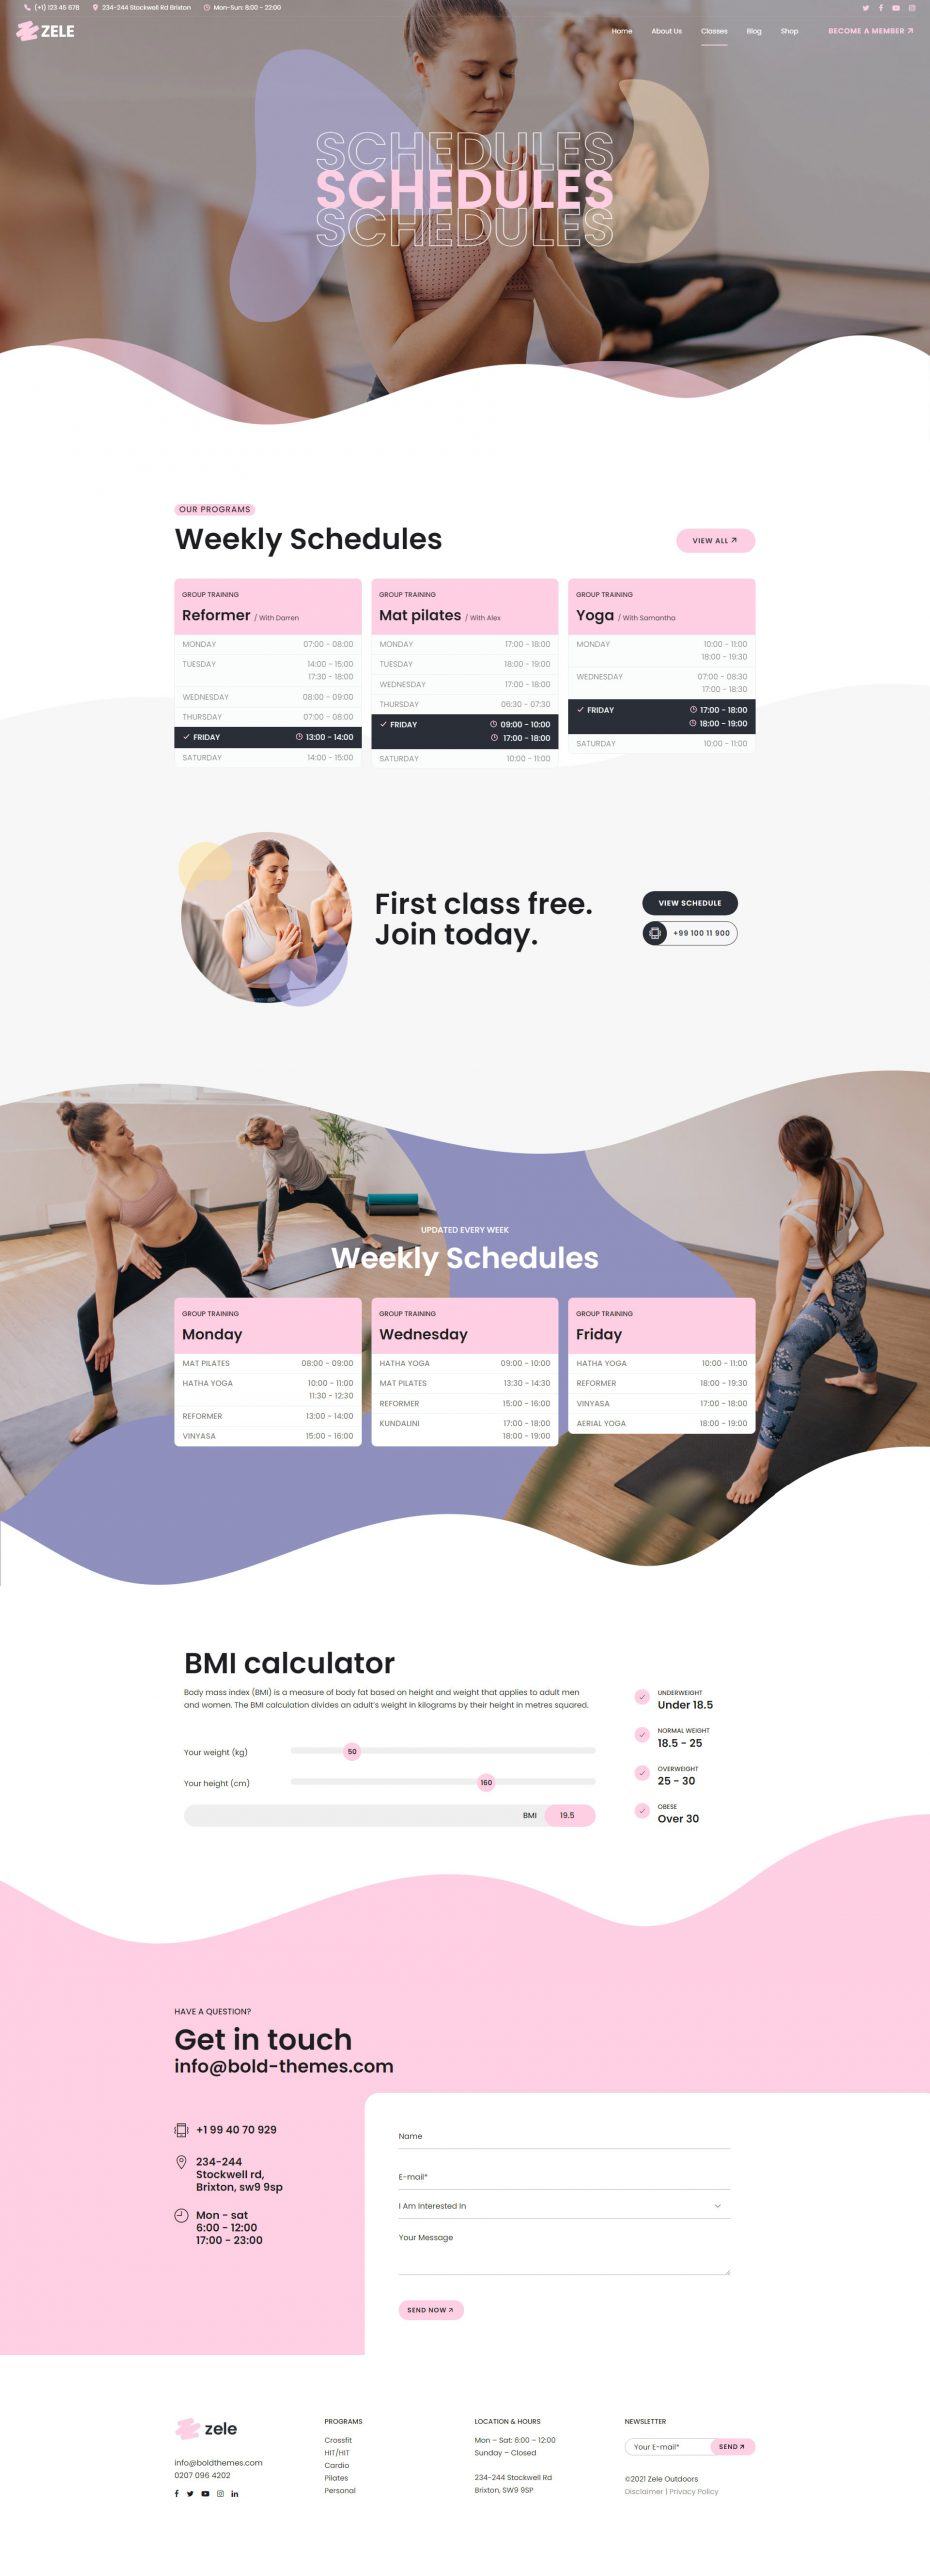 http://zele.bold-themes.com/wp-content/uploads/2021/07/Fluid-Schedules-scaled-1.jpg